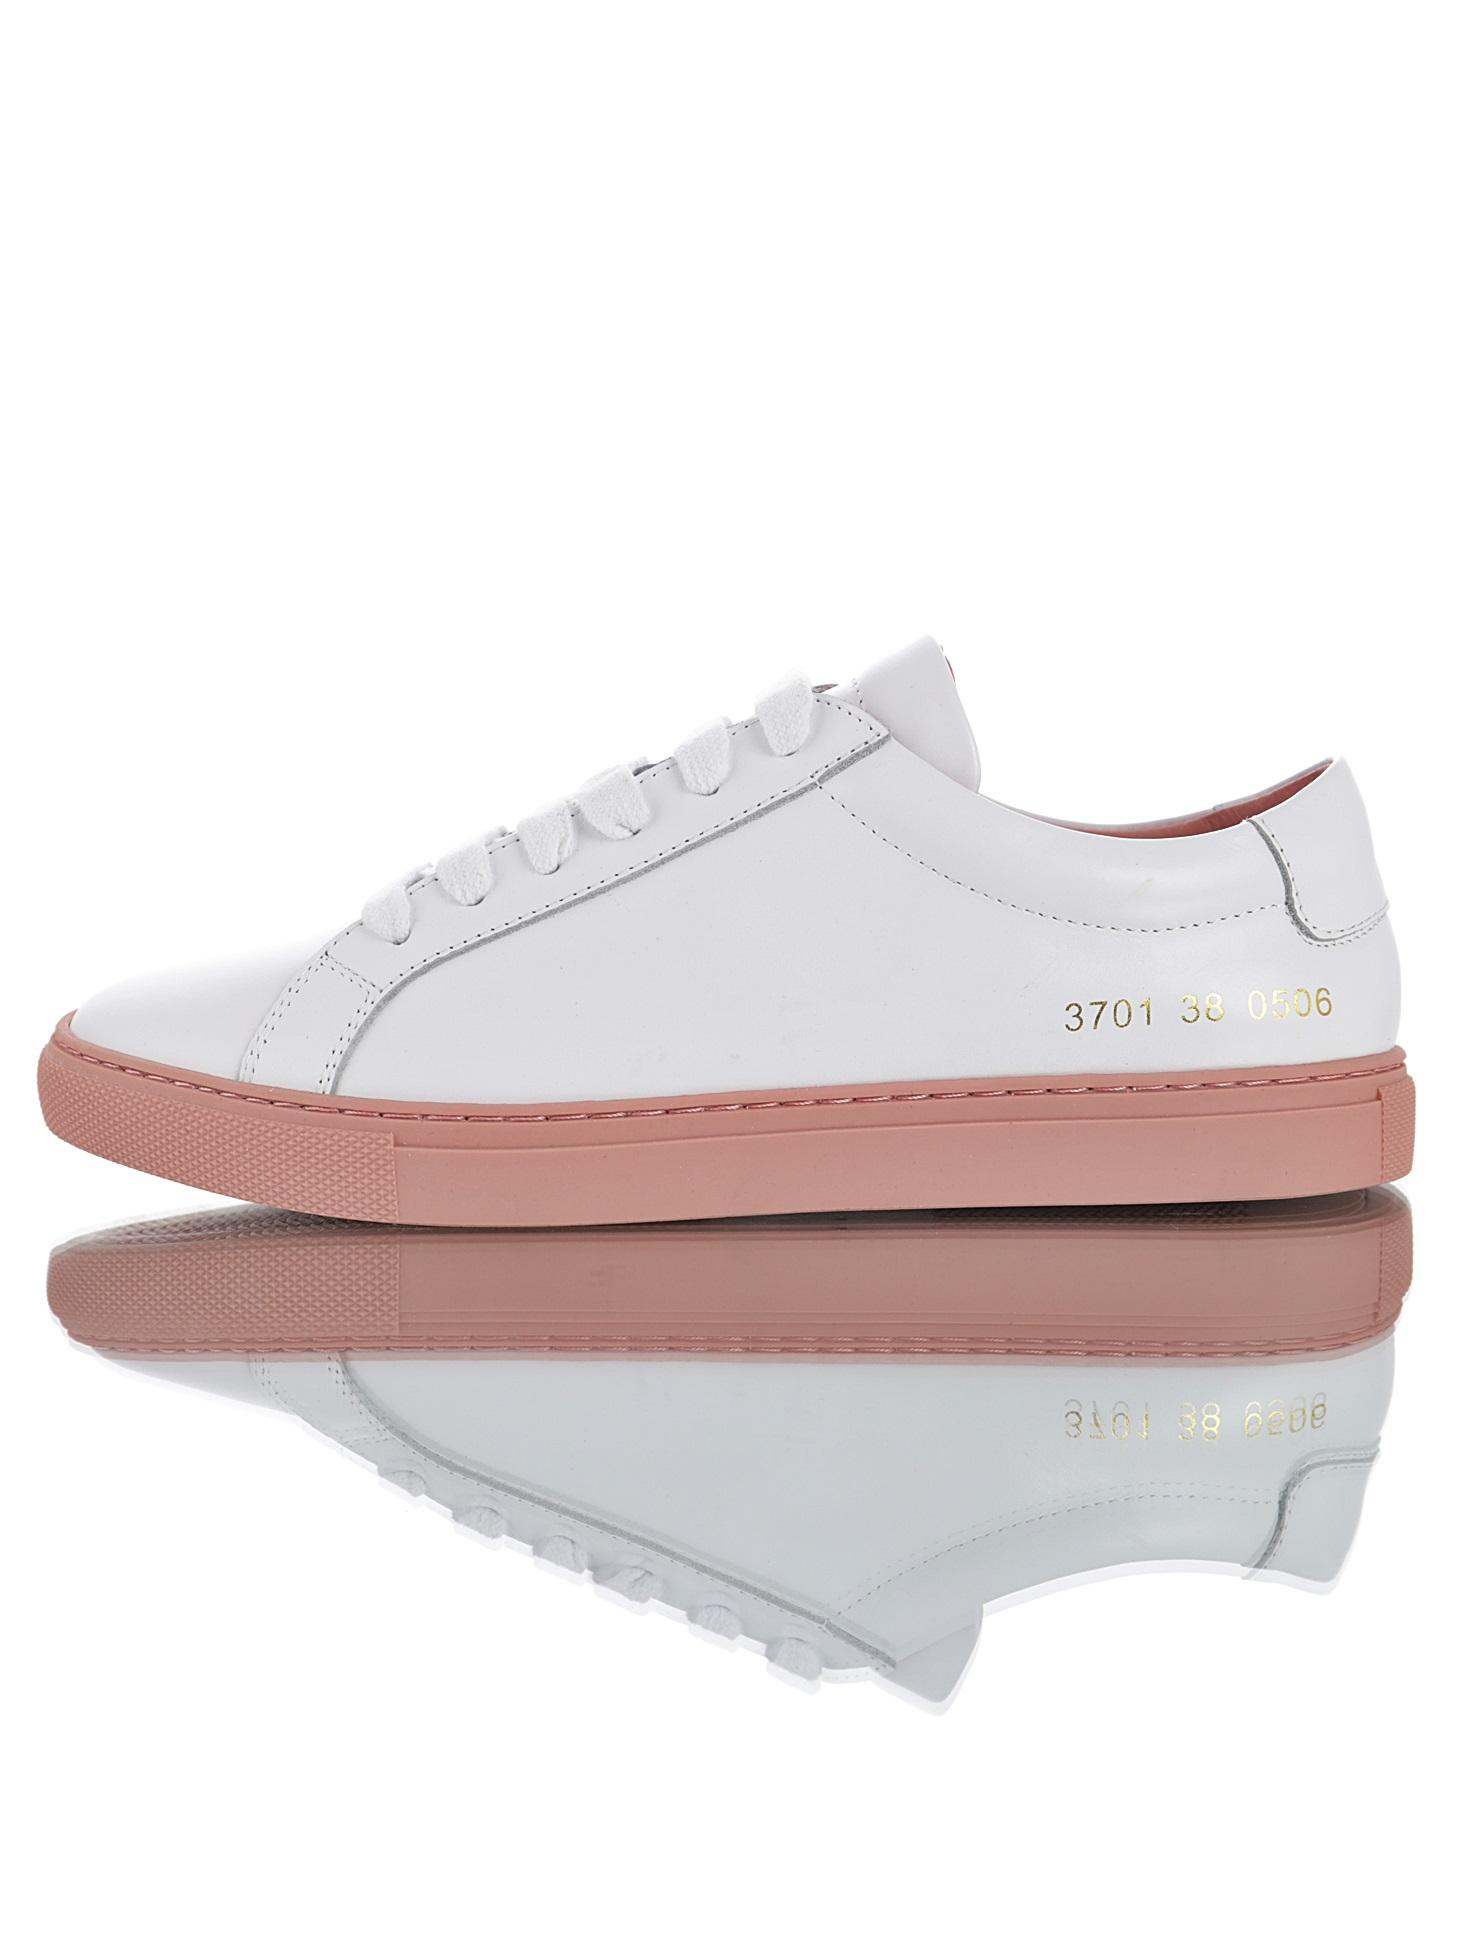 7977deff69db WOMAN By Common Projects Achilles Low Triple White Black Brown Owl Print  Casual Shoes Men Women Genuine Leather Chaussure With Box 35 44 Comfort  Shoes ...